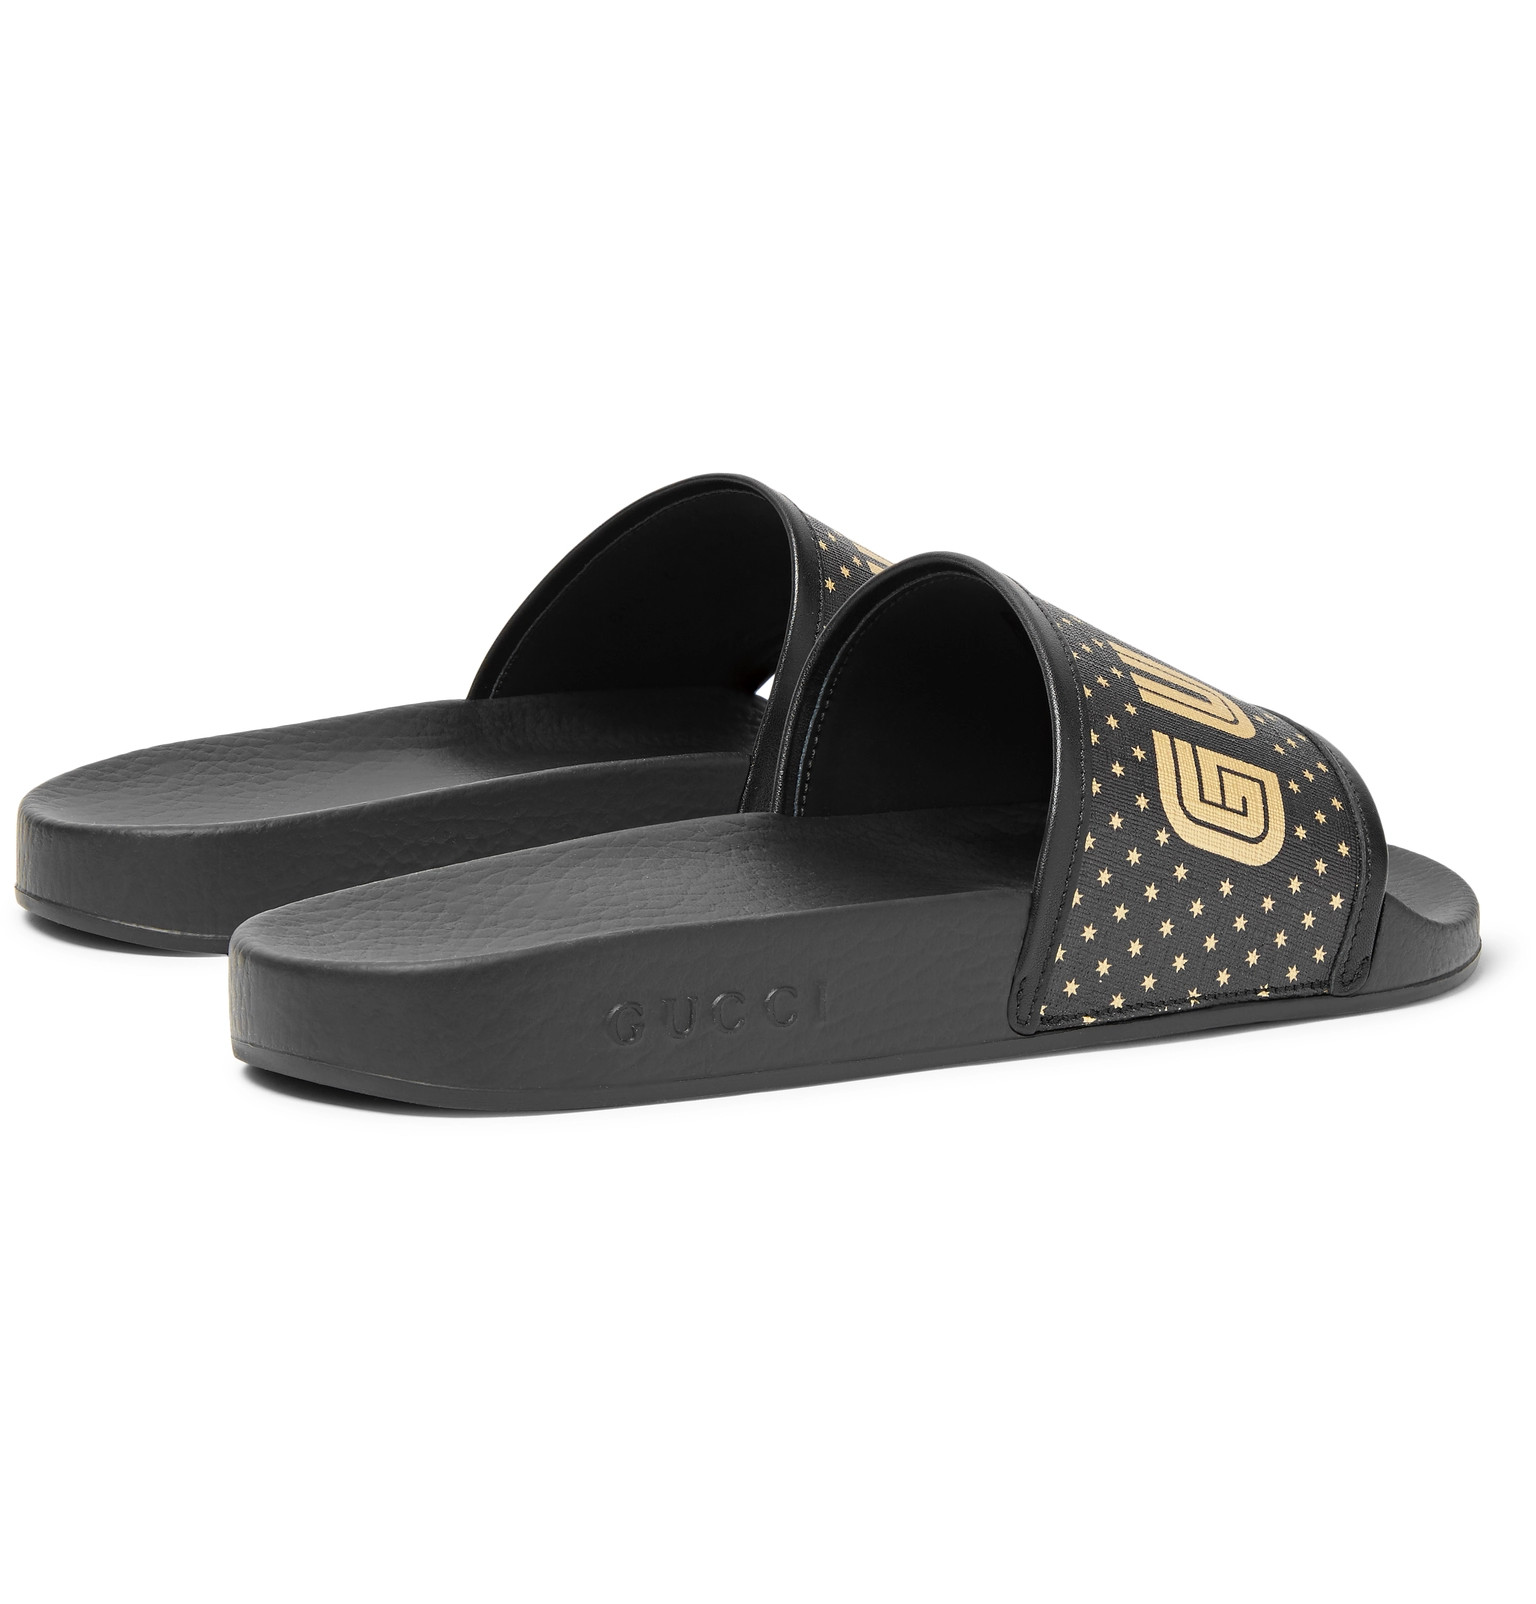 b832f338781a Gucci - Leather-Trimmed Logo-Print Rubber Slides